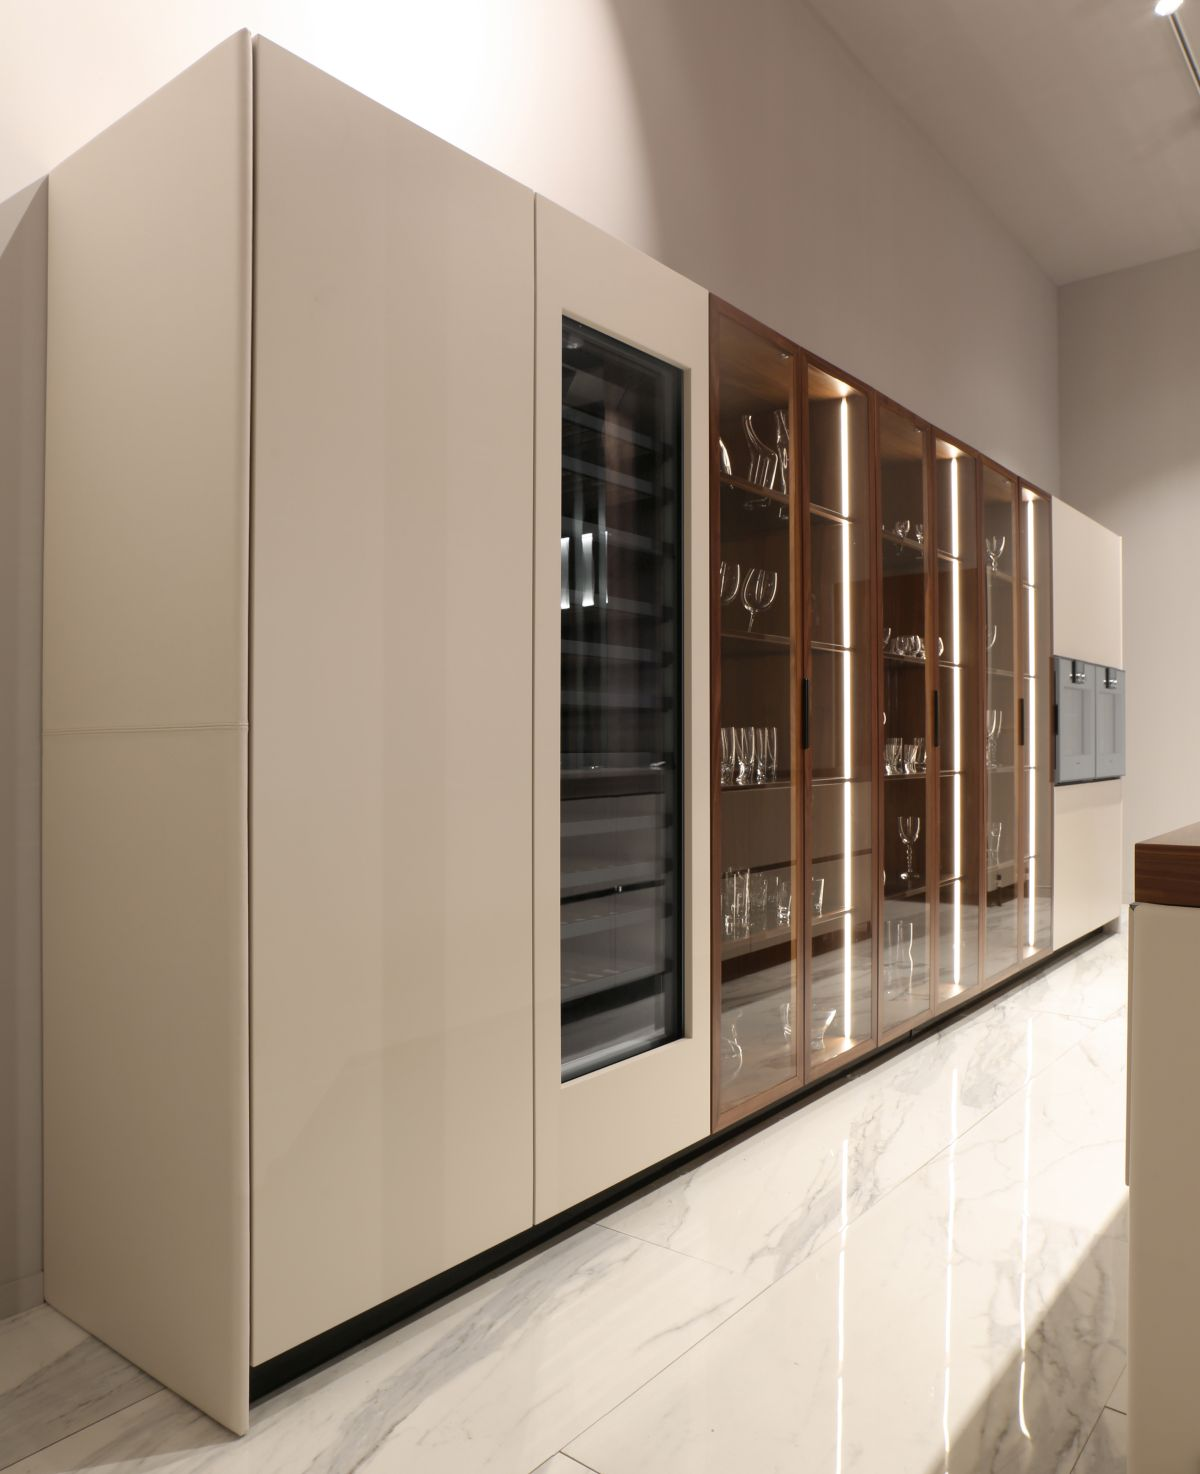 The large cabinet unit offers lots of storage while maintaining a very simple and modern appearance